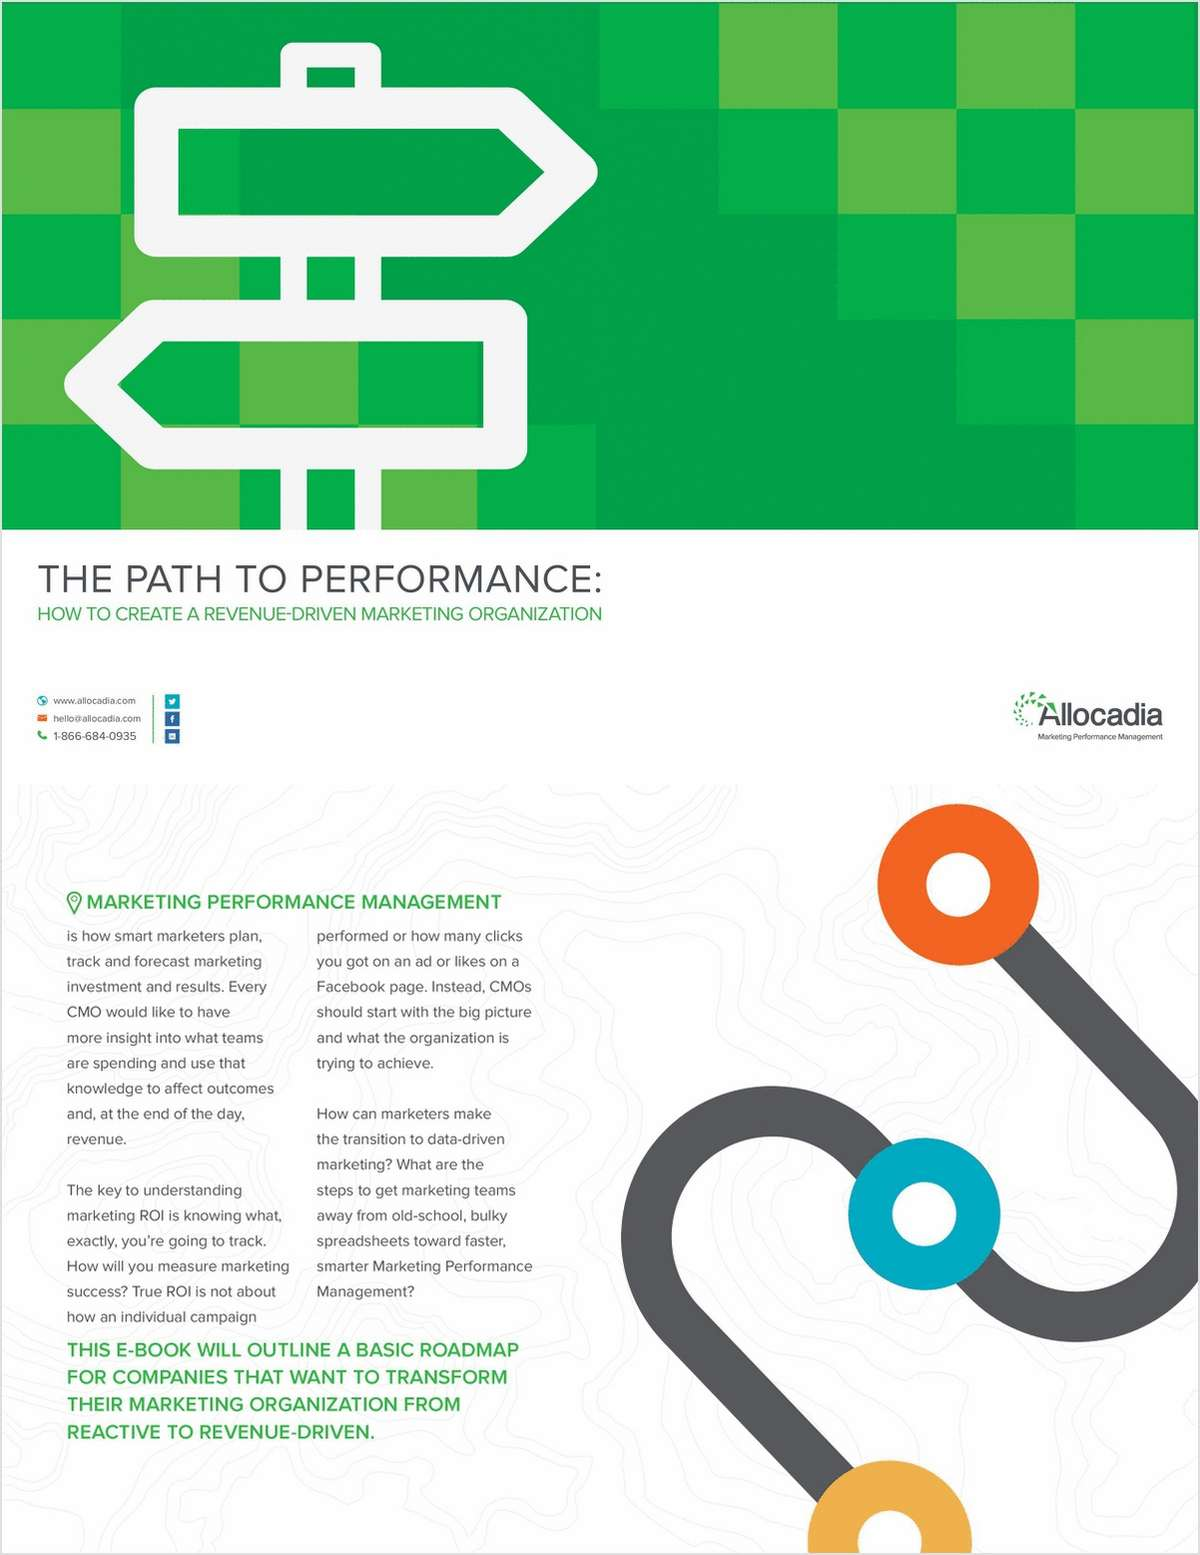 The Path to Marketing Performance